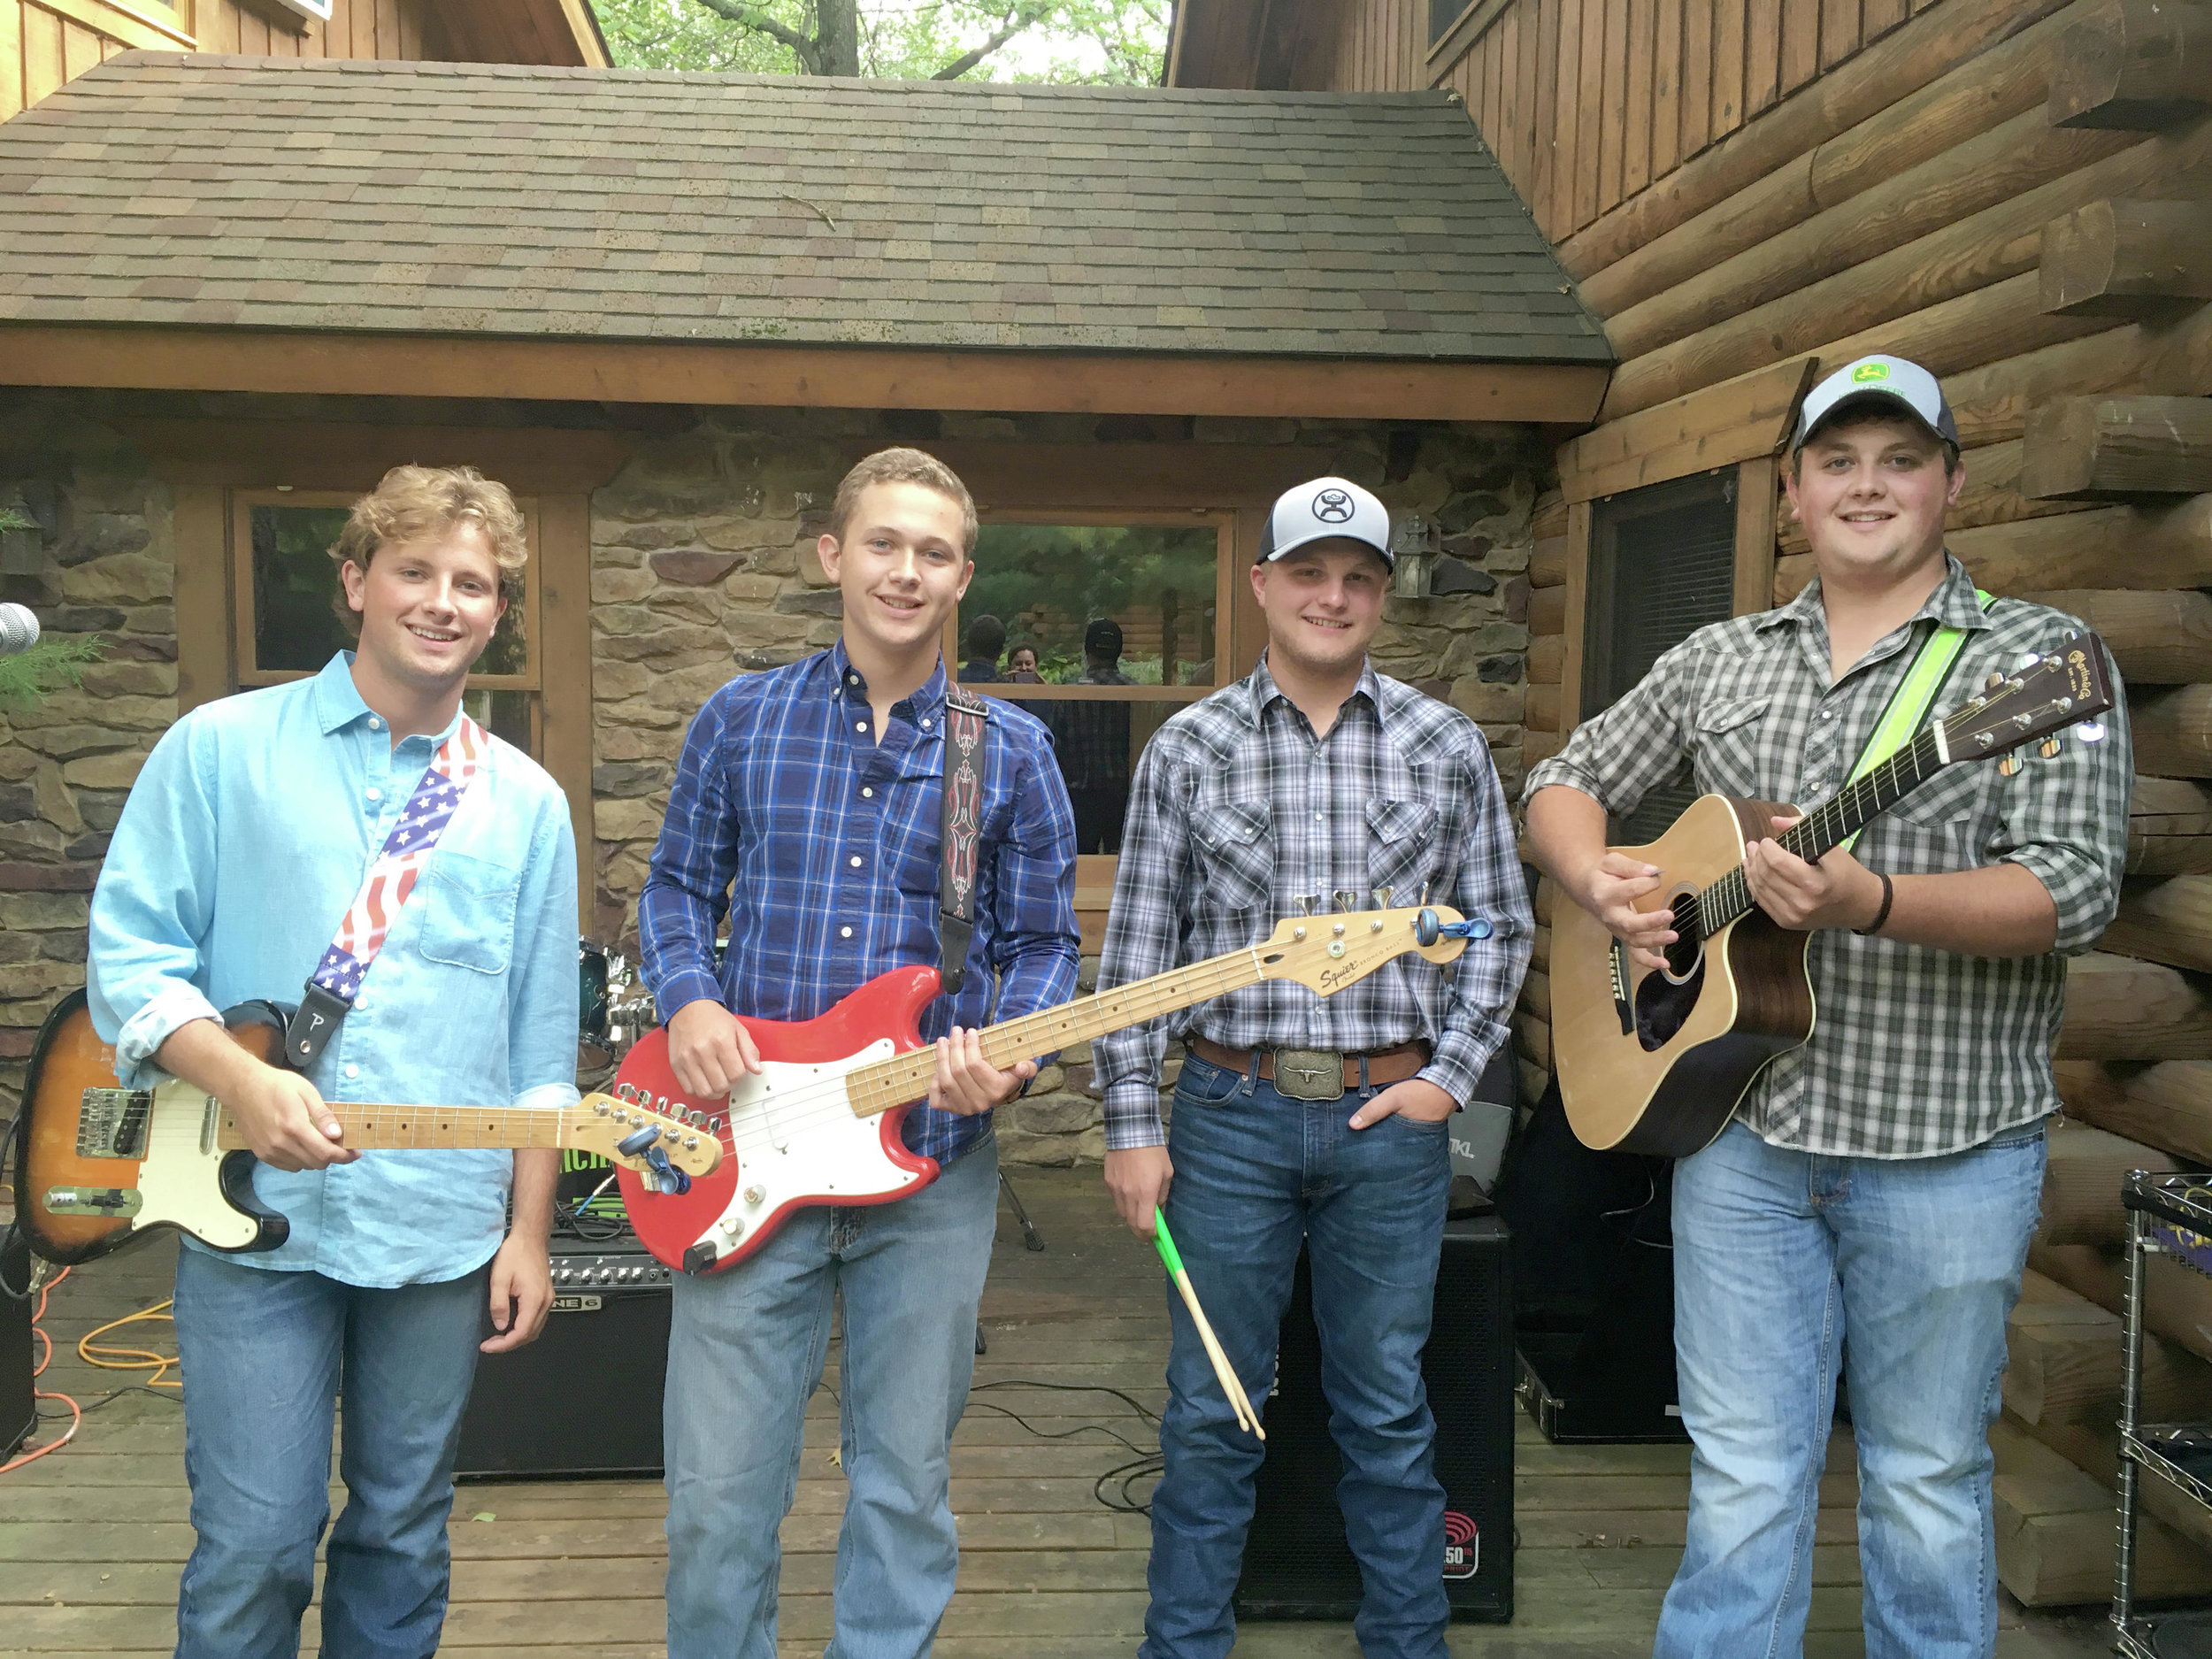 Tim Walsh, Dan Walsh, Derek Reichling and Jack Walsh form the band Incredibly Real, which will play at the Firemen's Ball on March 23 at the Park Rapids Fire Hall. (Submitted photo)